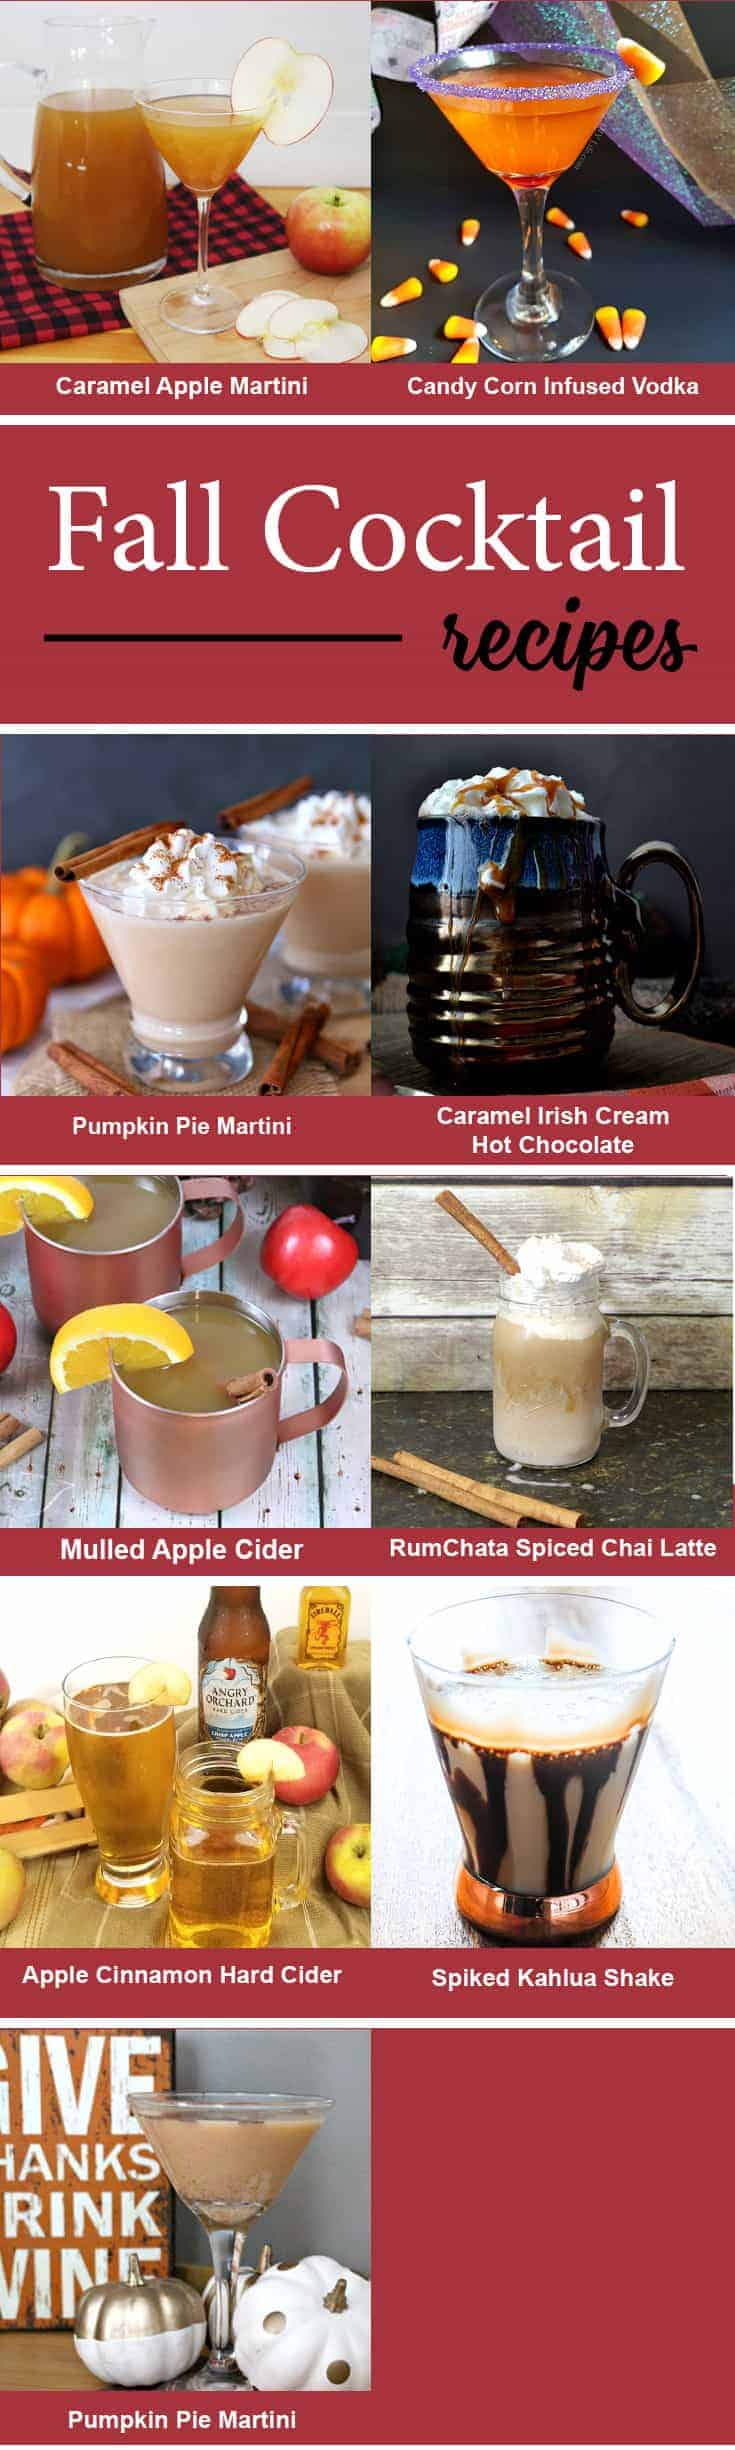 I love apple cider in the fall. The spices are great and they all blend together. This apple cinnamon hard cider recipes gives cider and alcohol twist! - www.michellejdesigns.com